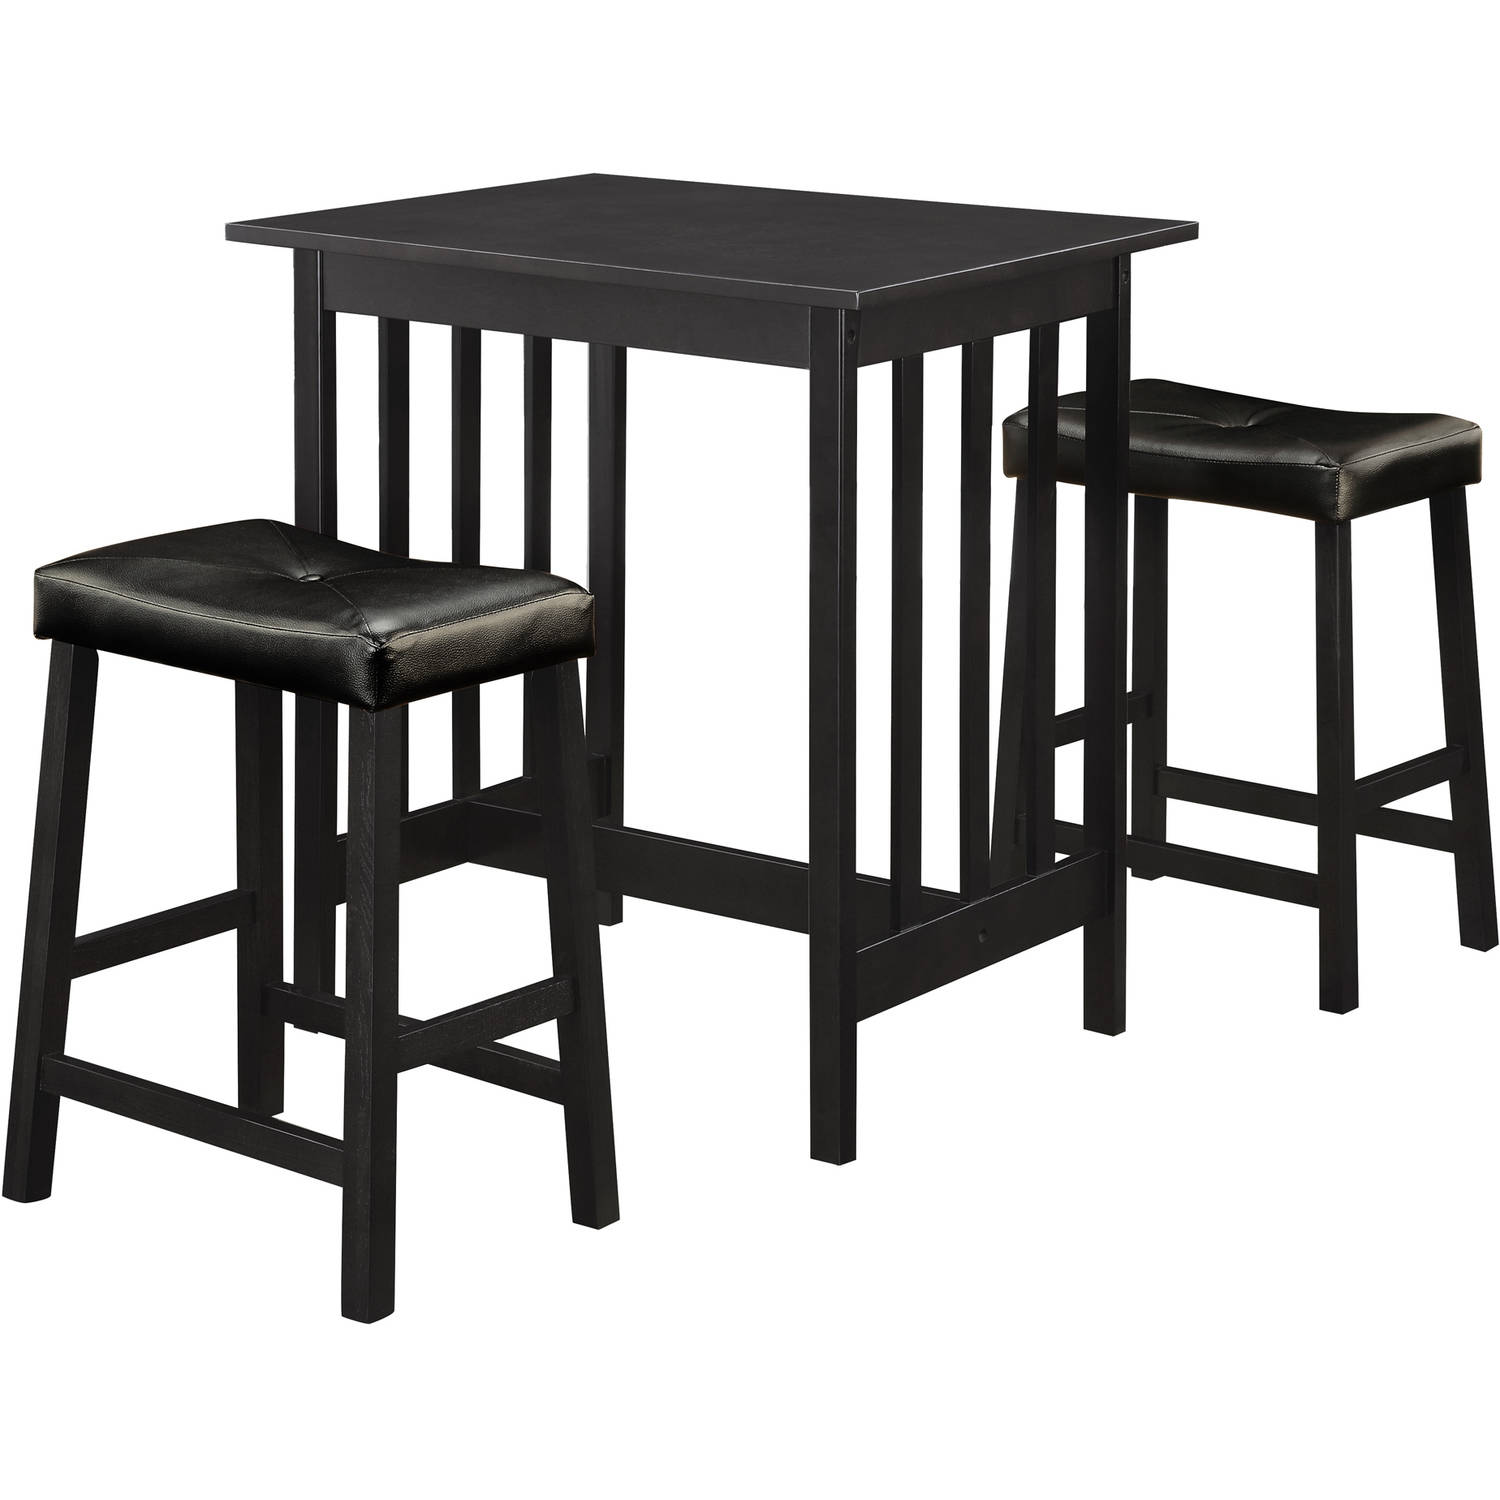 Bunnings Bar Stools Small Pub Table With Stools Round Table Ideas